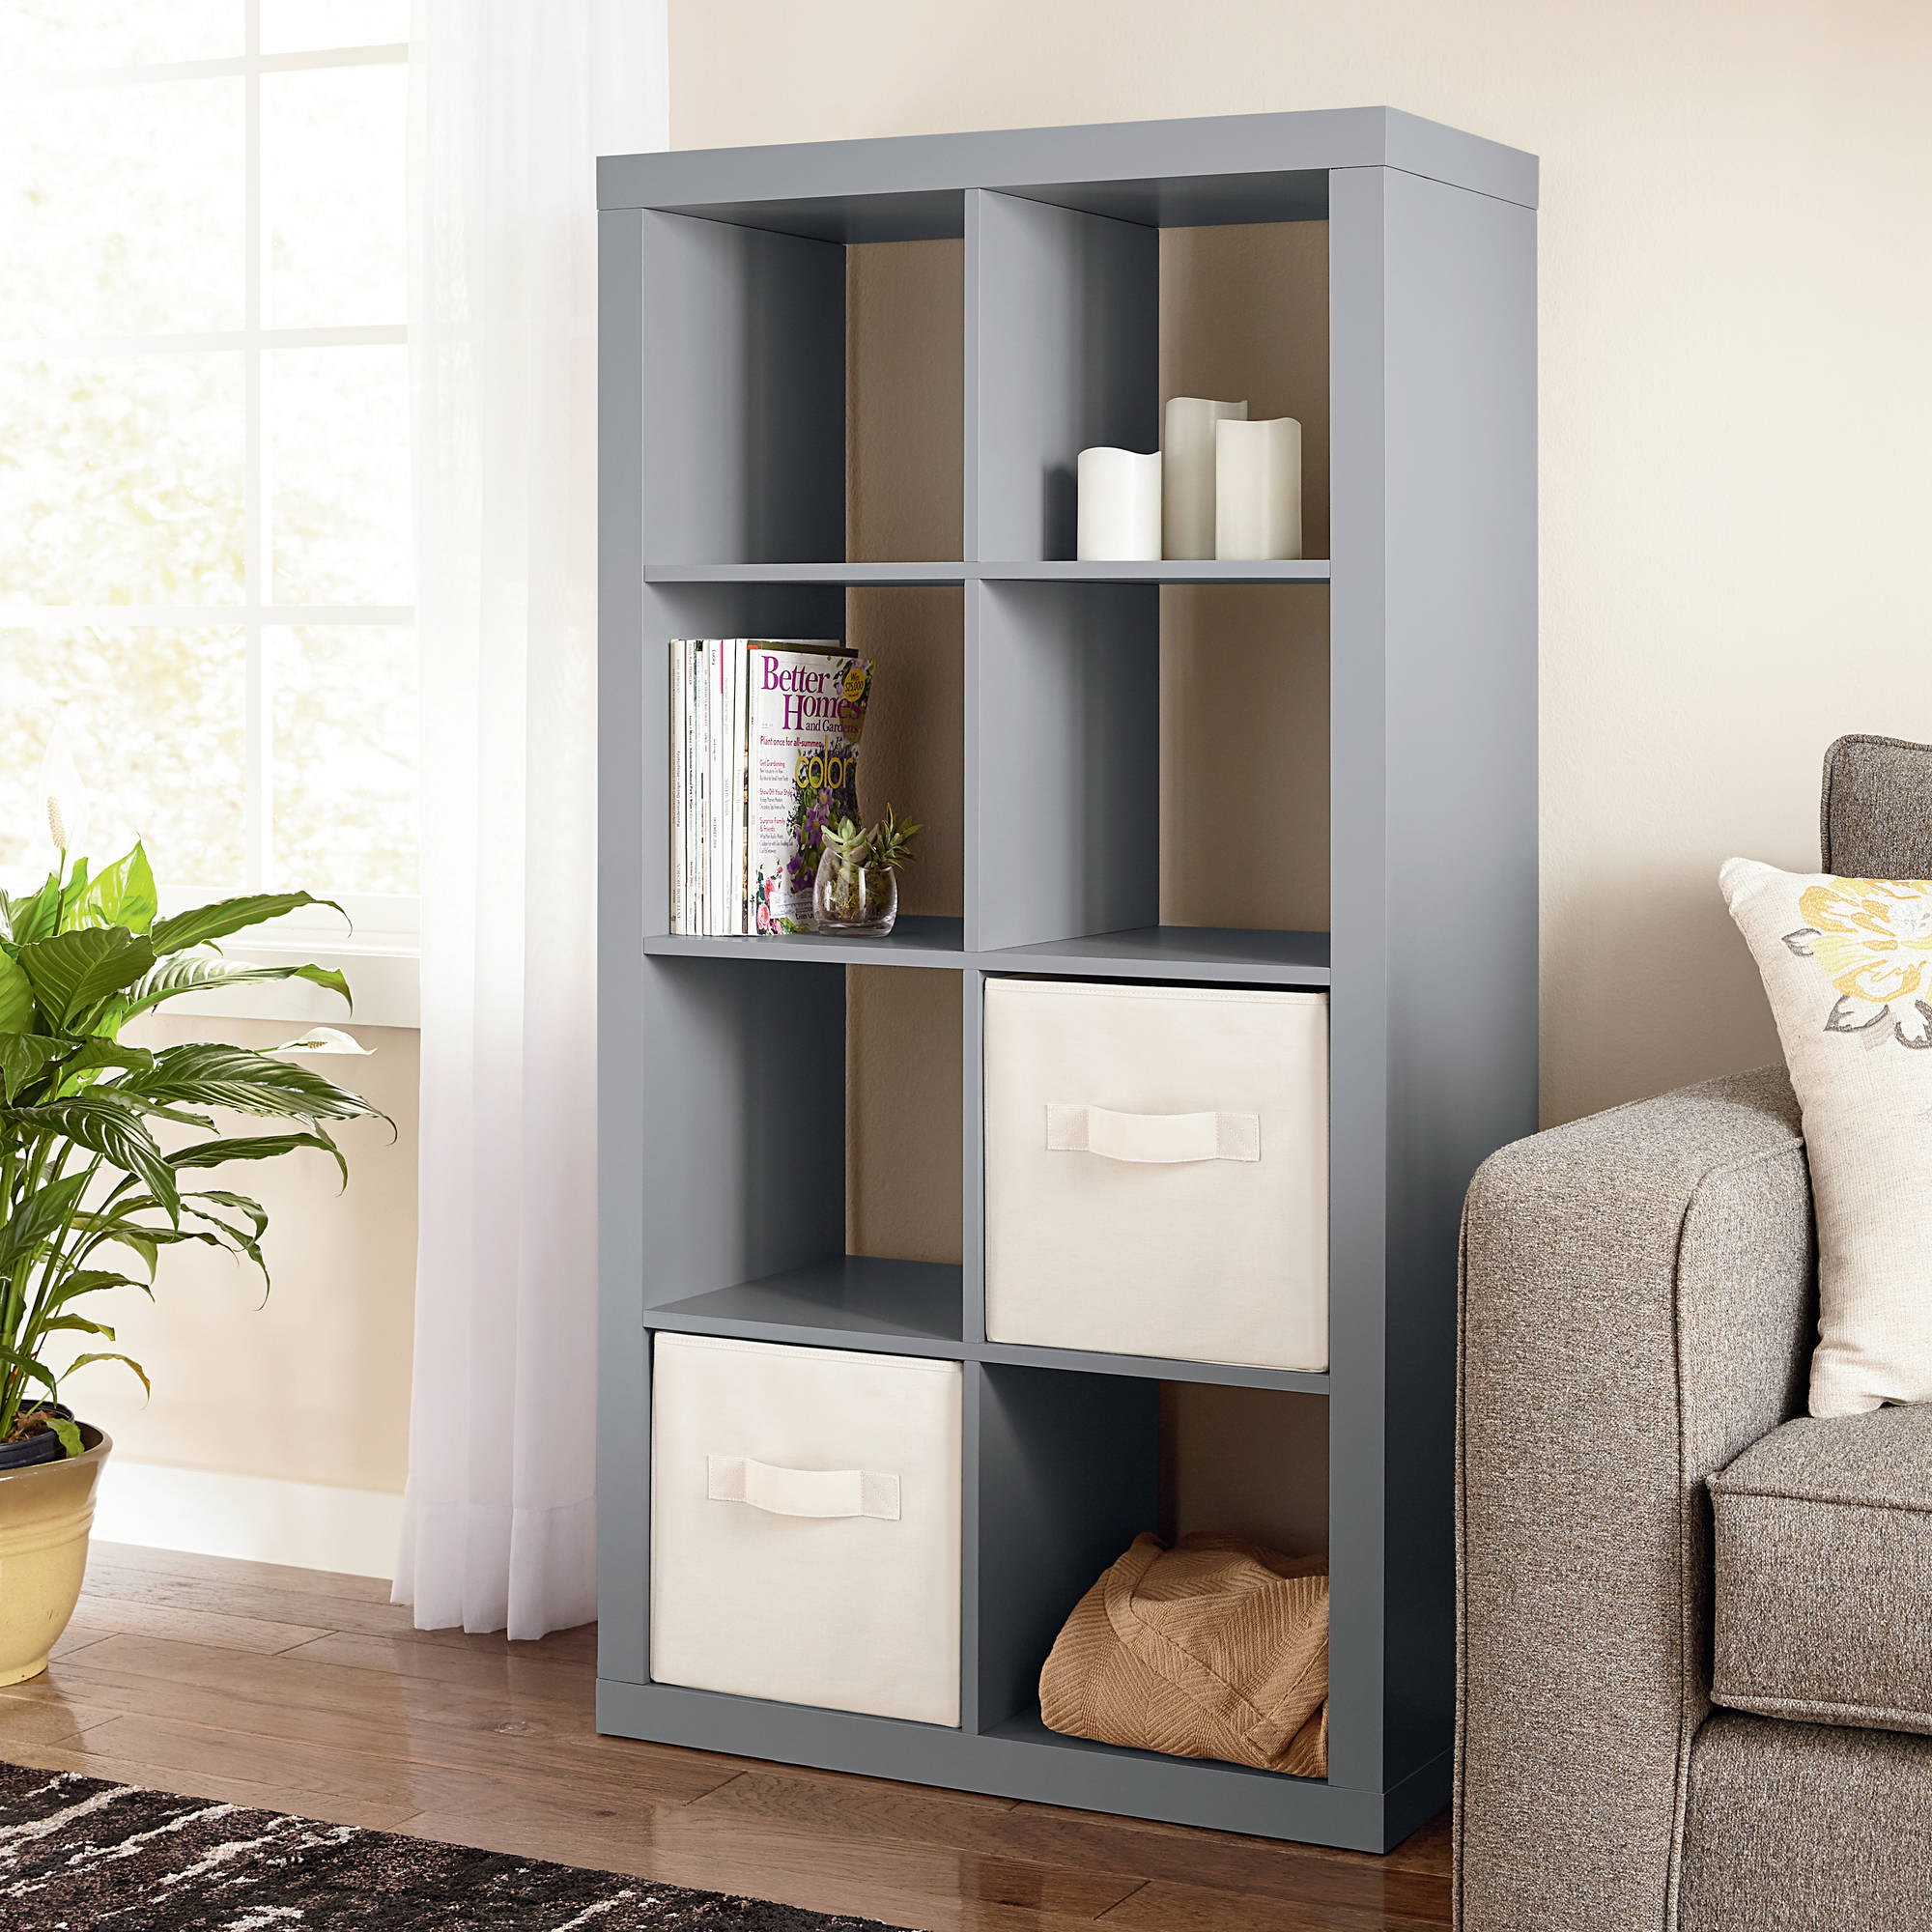 Gray 8 Cube Bookcase Display Organizer Versatile Cubbies Shelving Storage  Unit